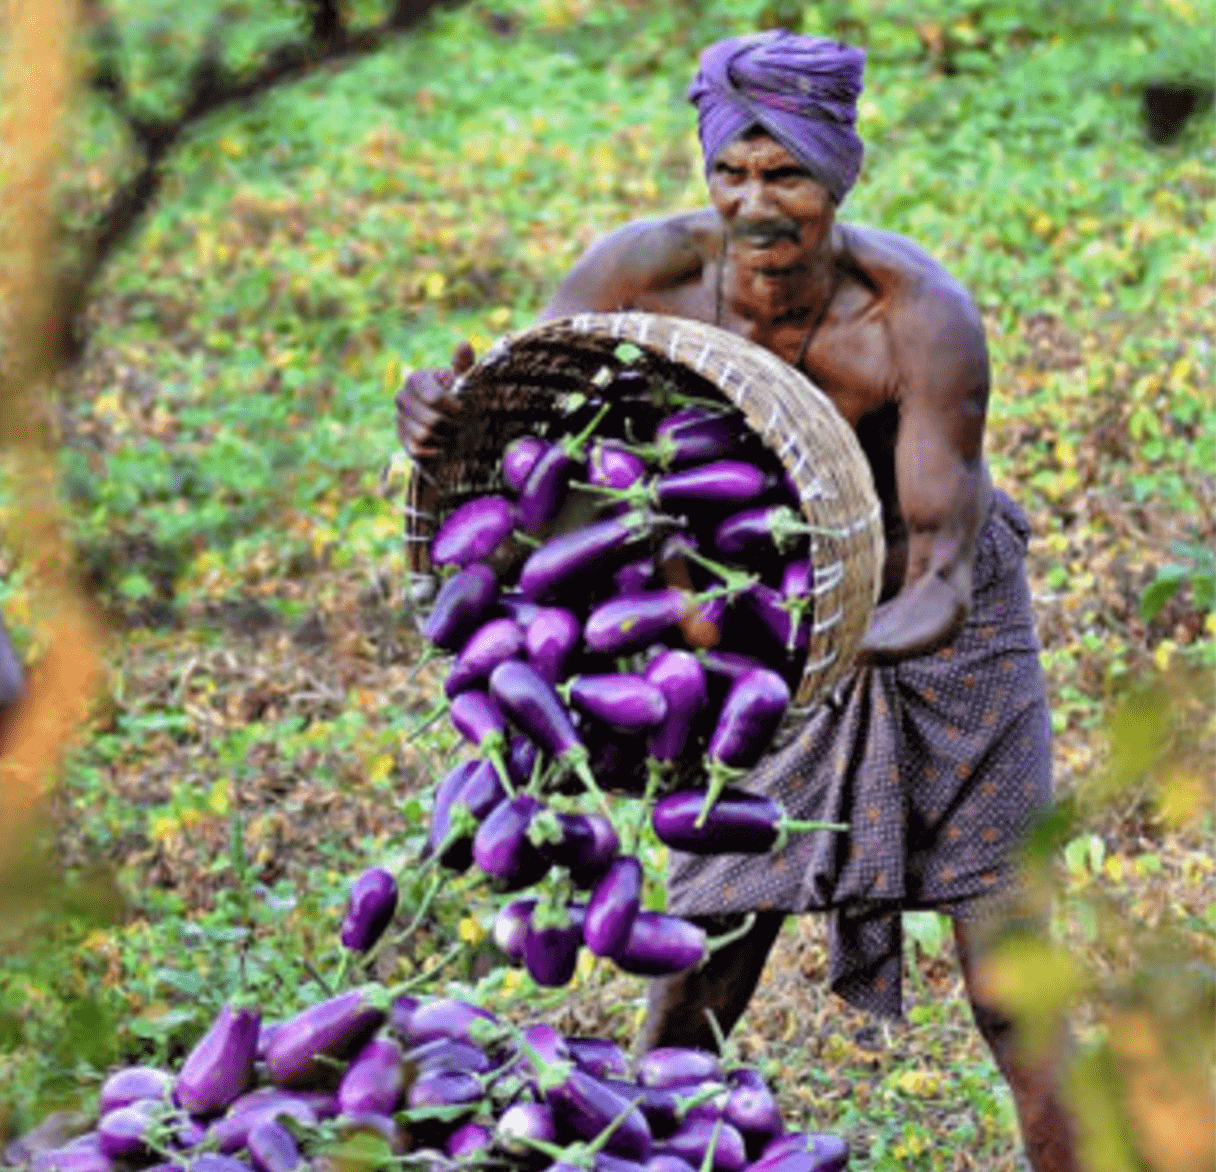 Indian scientist: Promoting 'rich man's' organic food' and delaying insect-resistant GMO eggplant hurts poor